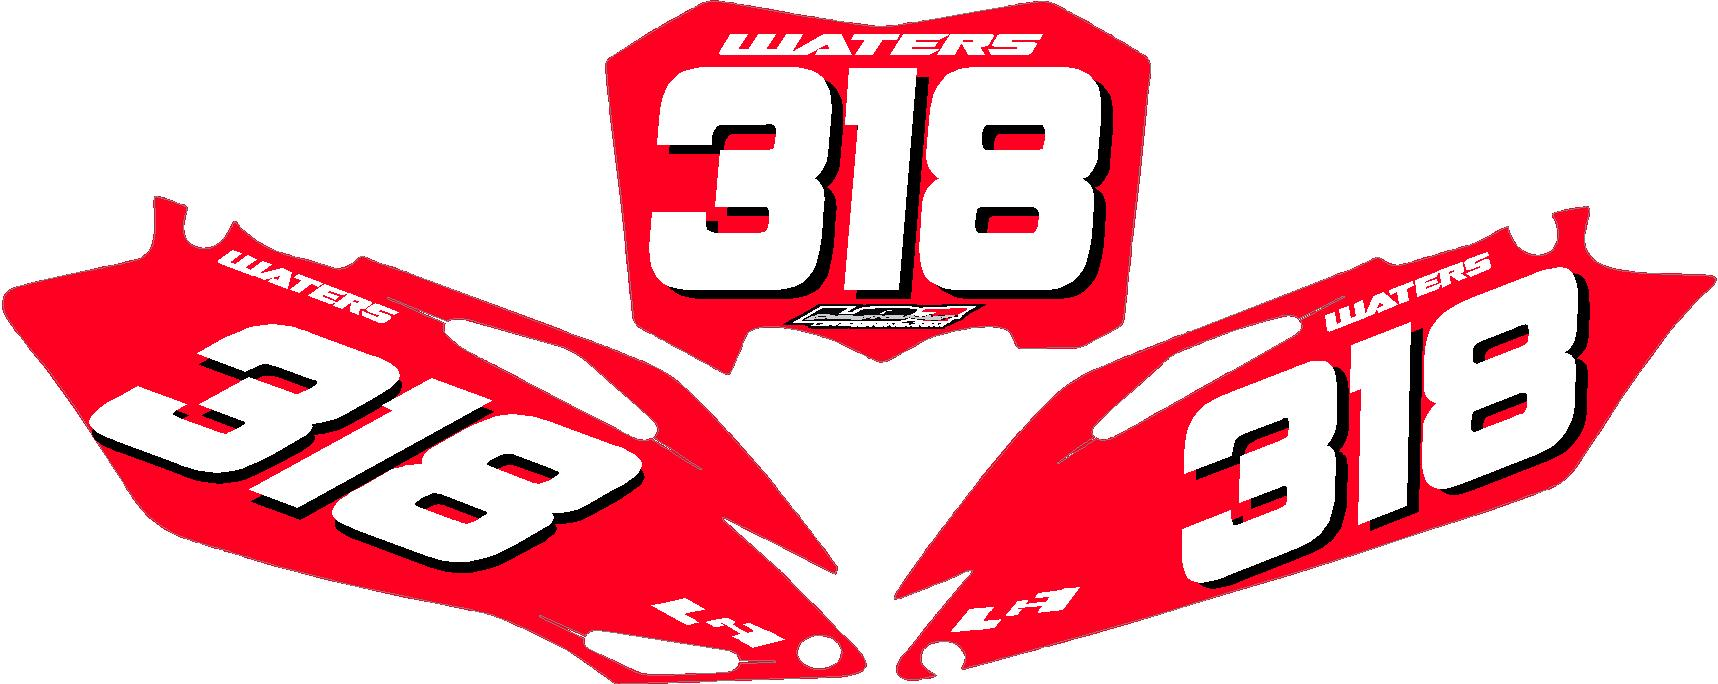 Vintage motocross number plate graphics - Single Color Plates 49